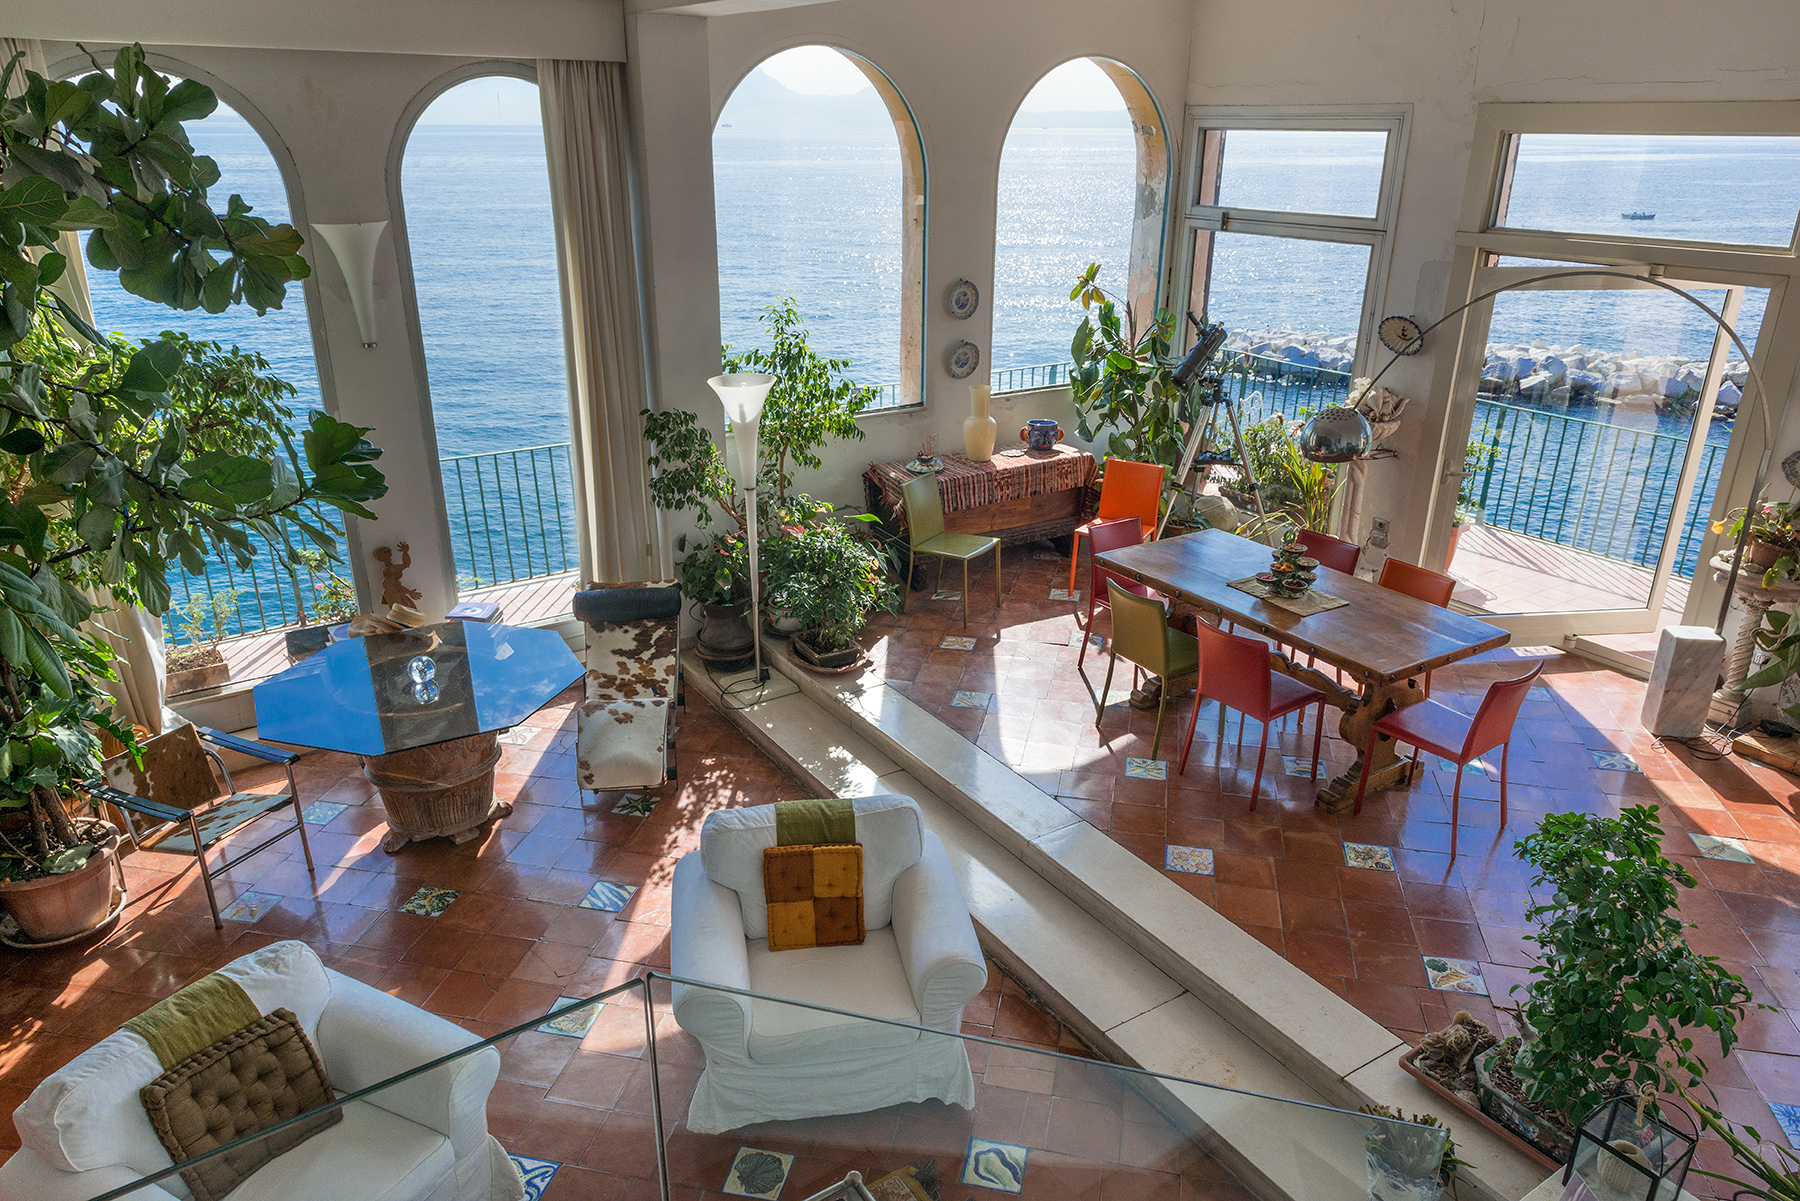 Appartement pour l Vente à Monumental house by the sea Napoli, Naples Italie